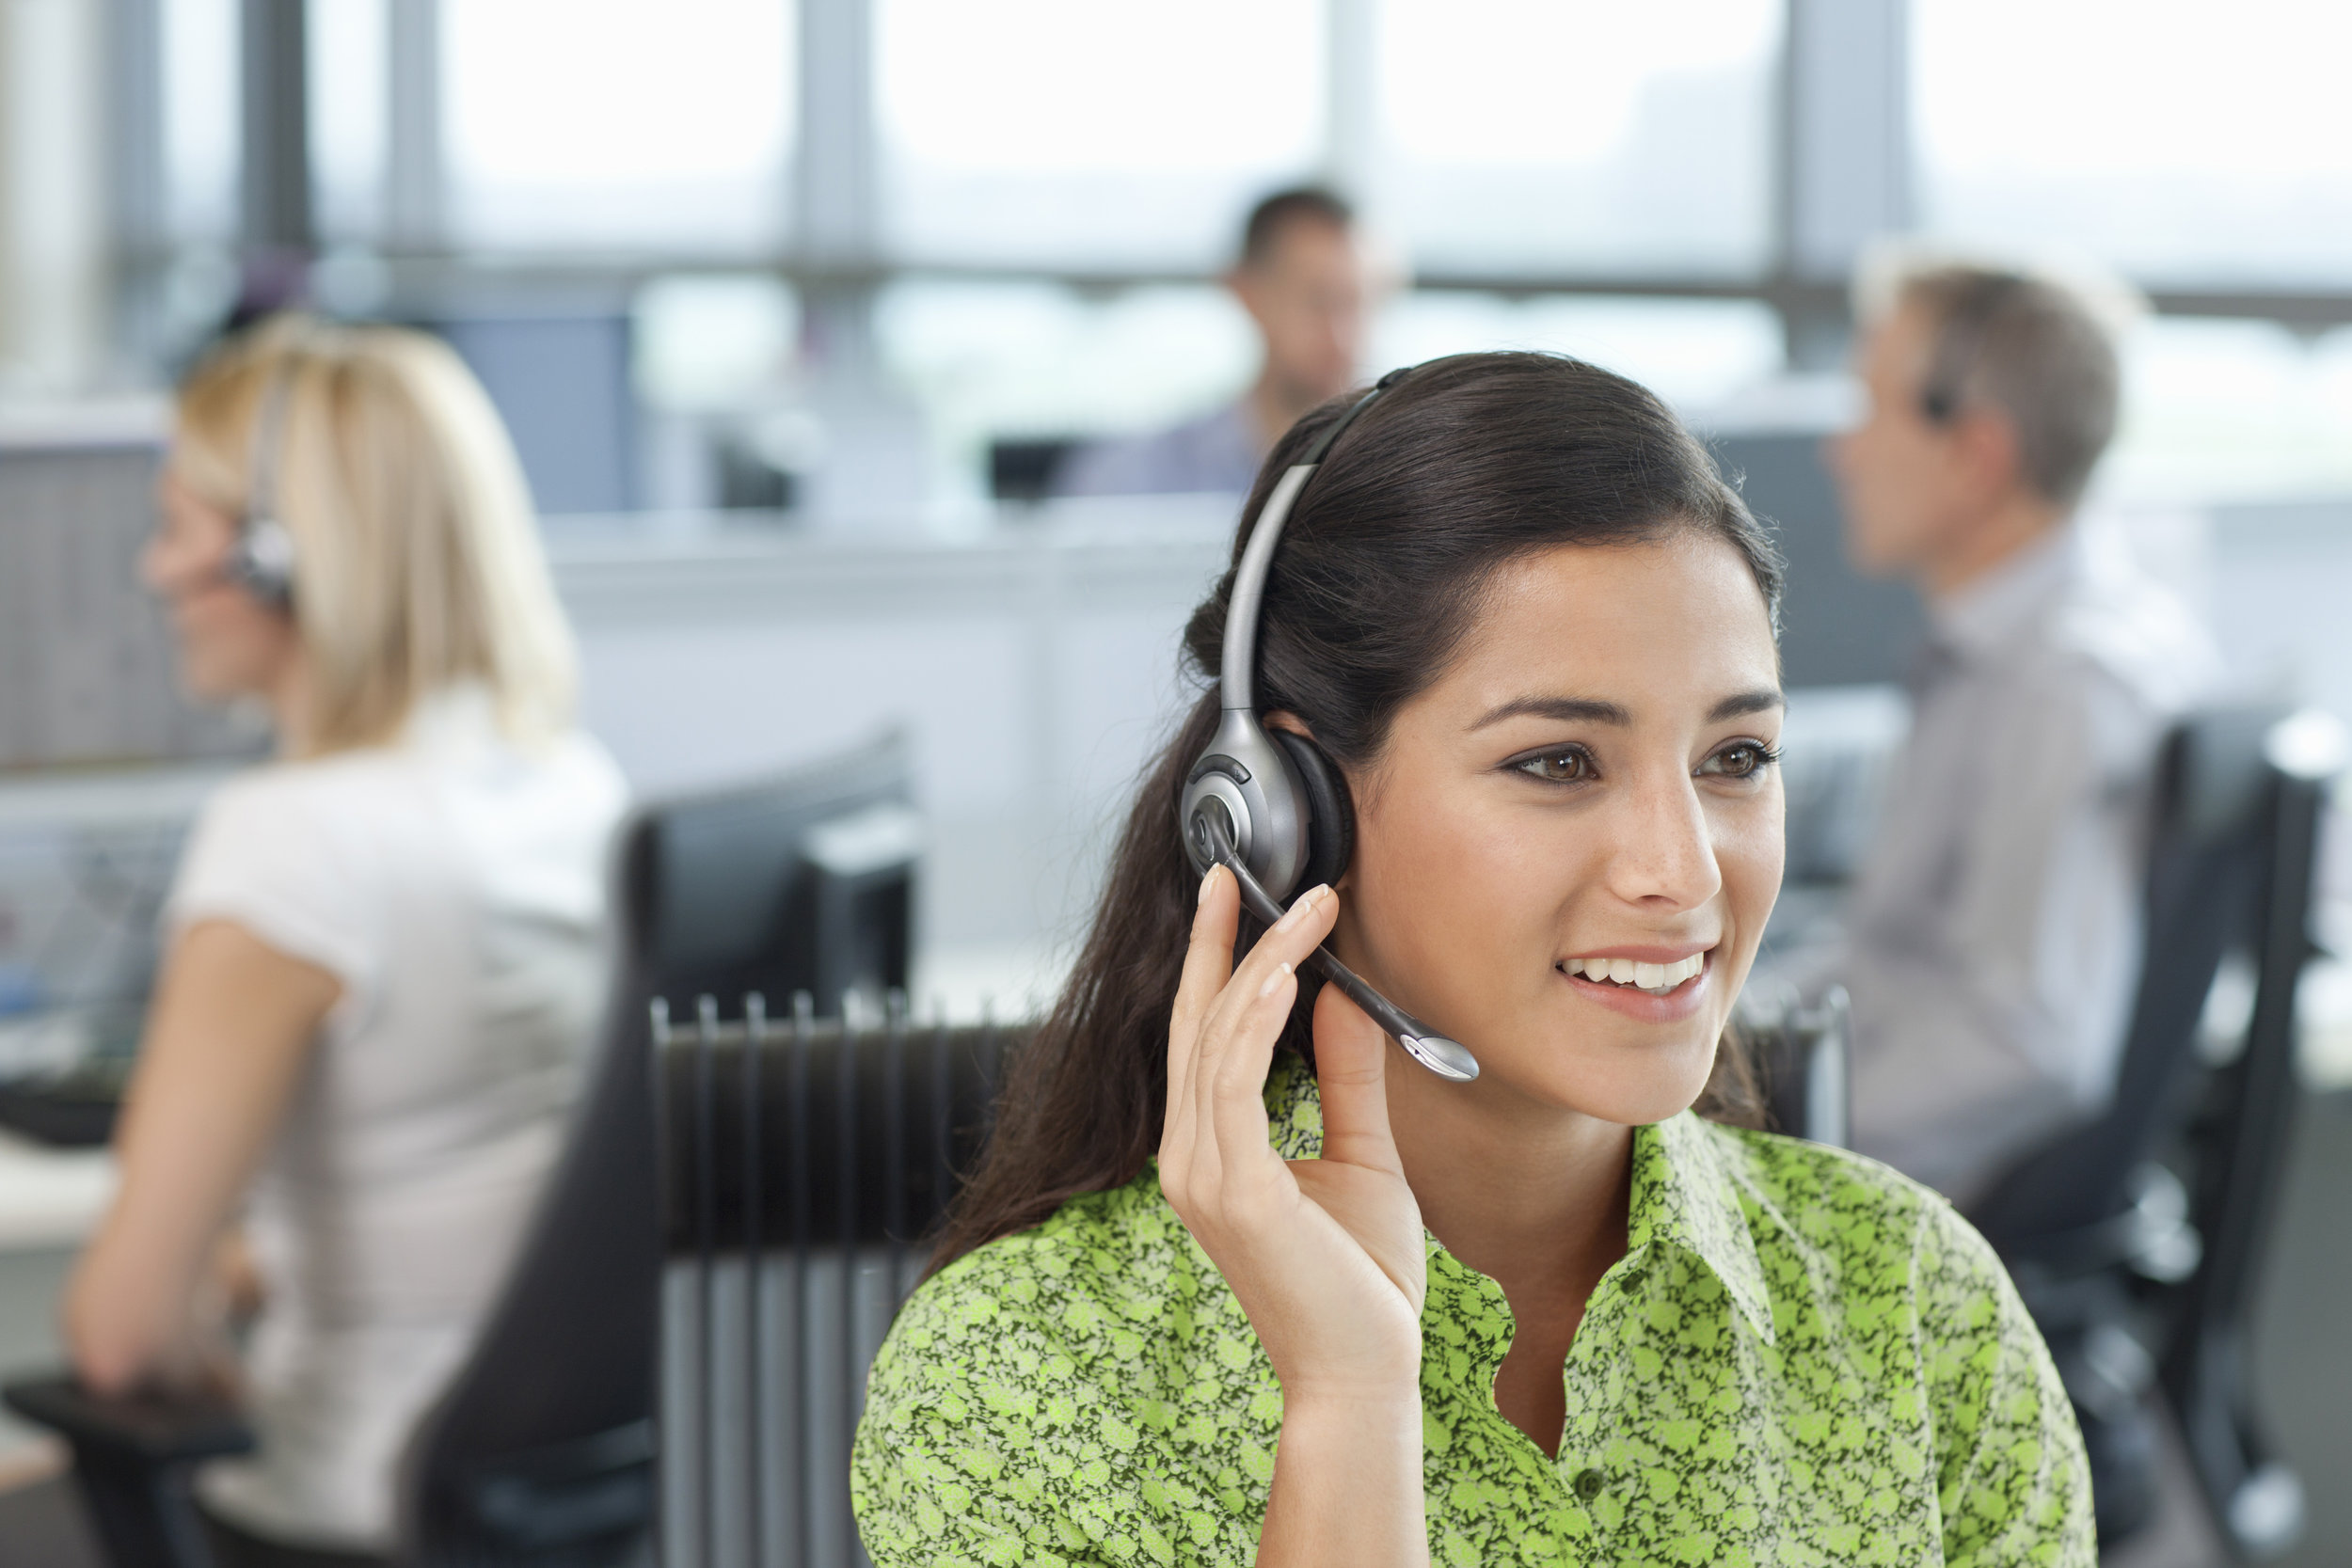 Remote Support - We Connect... You're FixedEmergency, Scheduled, After Hours or WeekendsRemote Controlled Computer SupportFast, Reliable & SecureLower Your Total Support Costs